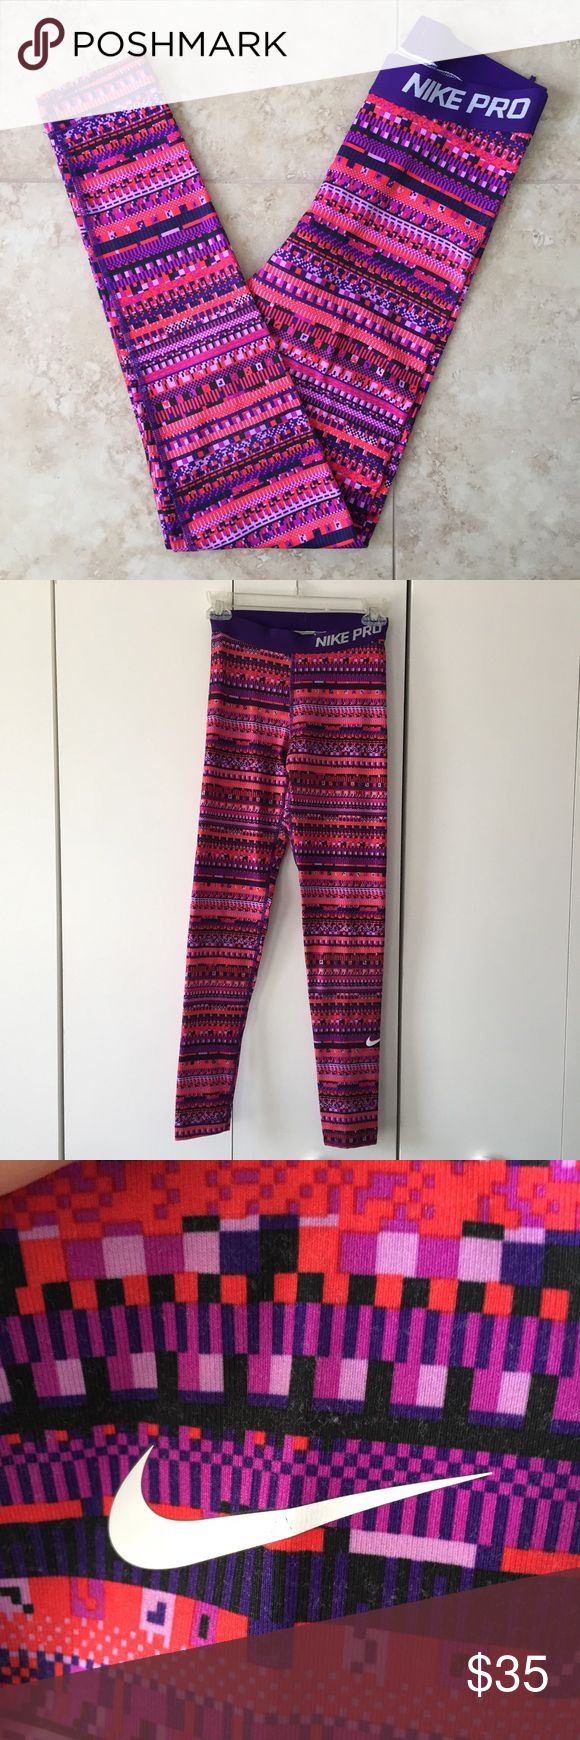 """Nike Pro Dri-FIT Pink Purple Tribal Print Leggings Pink and purple tribal print Nike Pro Dri-FIT athletic leggings in size small. Soft inside and stretchy material. Great for running, Pilates, yoga, and other exercises. Some wear on waistband and legs (see pictures). 27"""" inseam. 35"""" outseam. Nike Pants Leggings"""